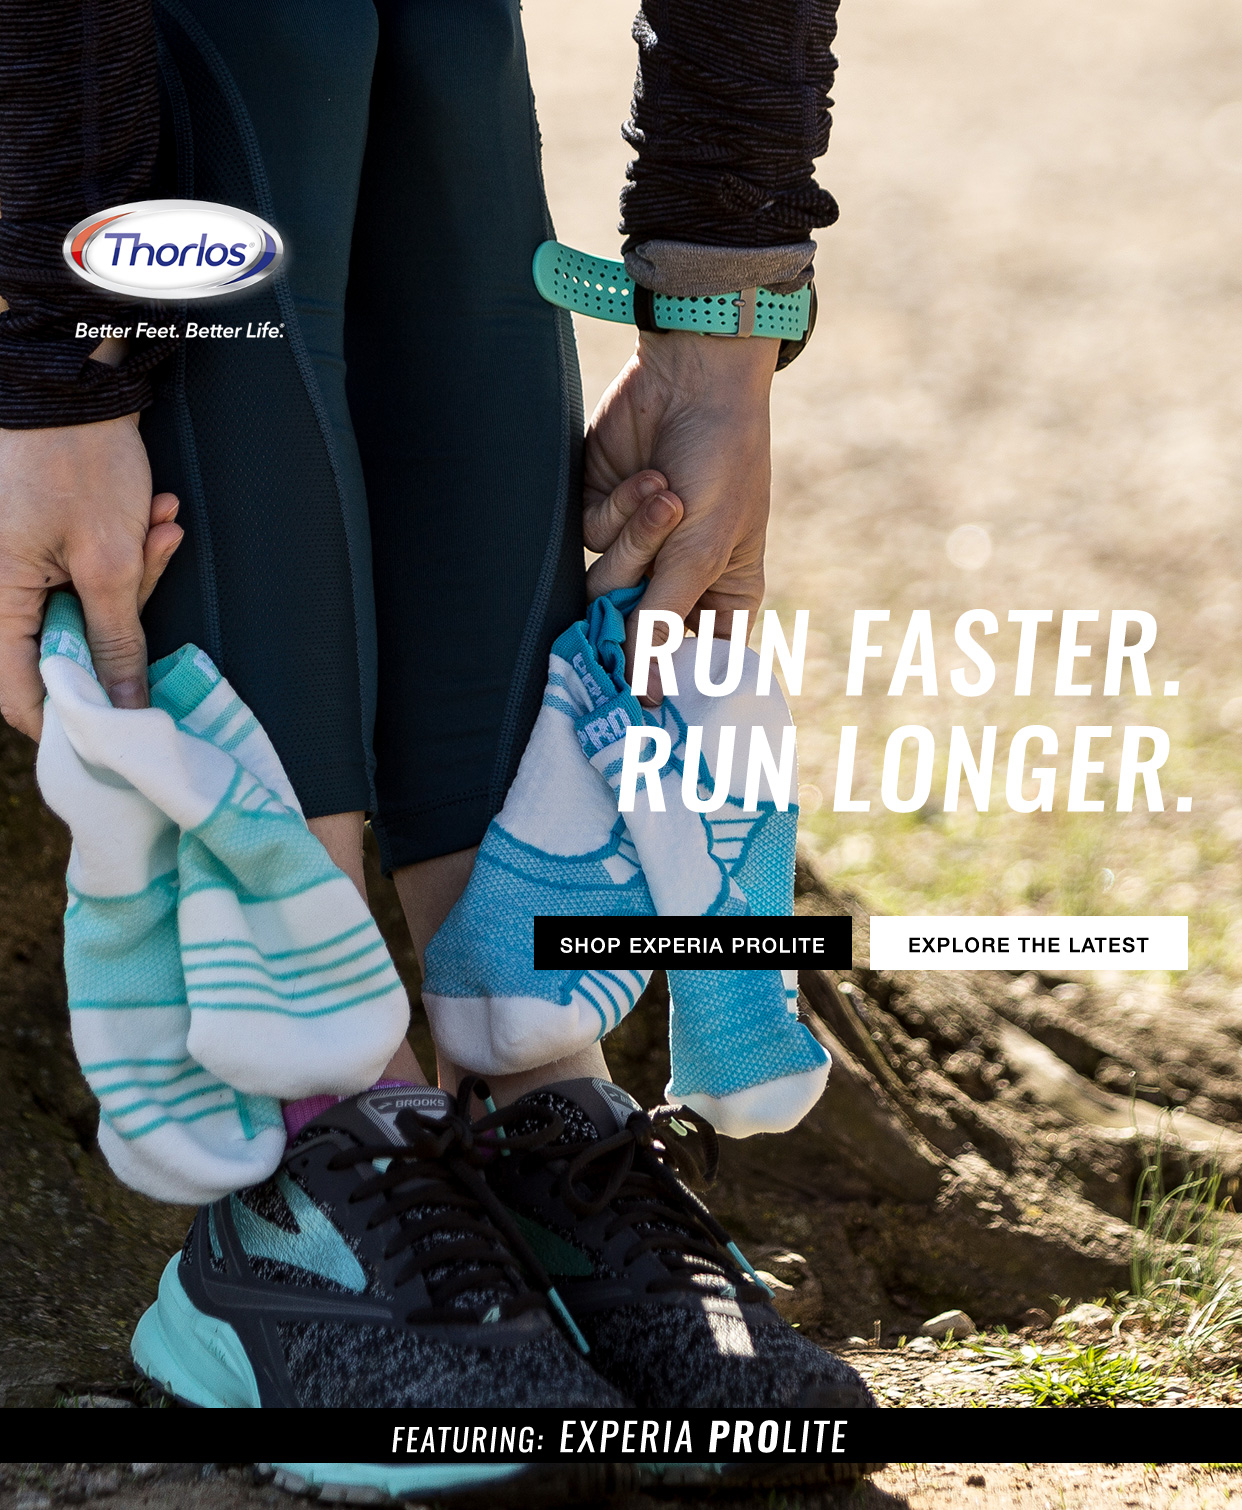 Run faster. Run longer. Featuring: Experia ProLite